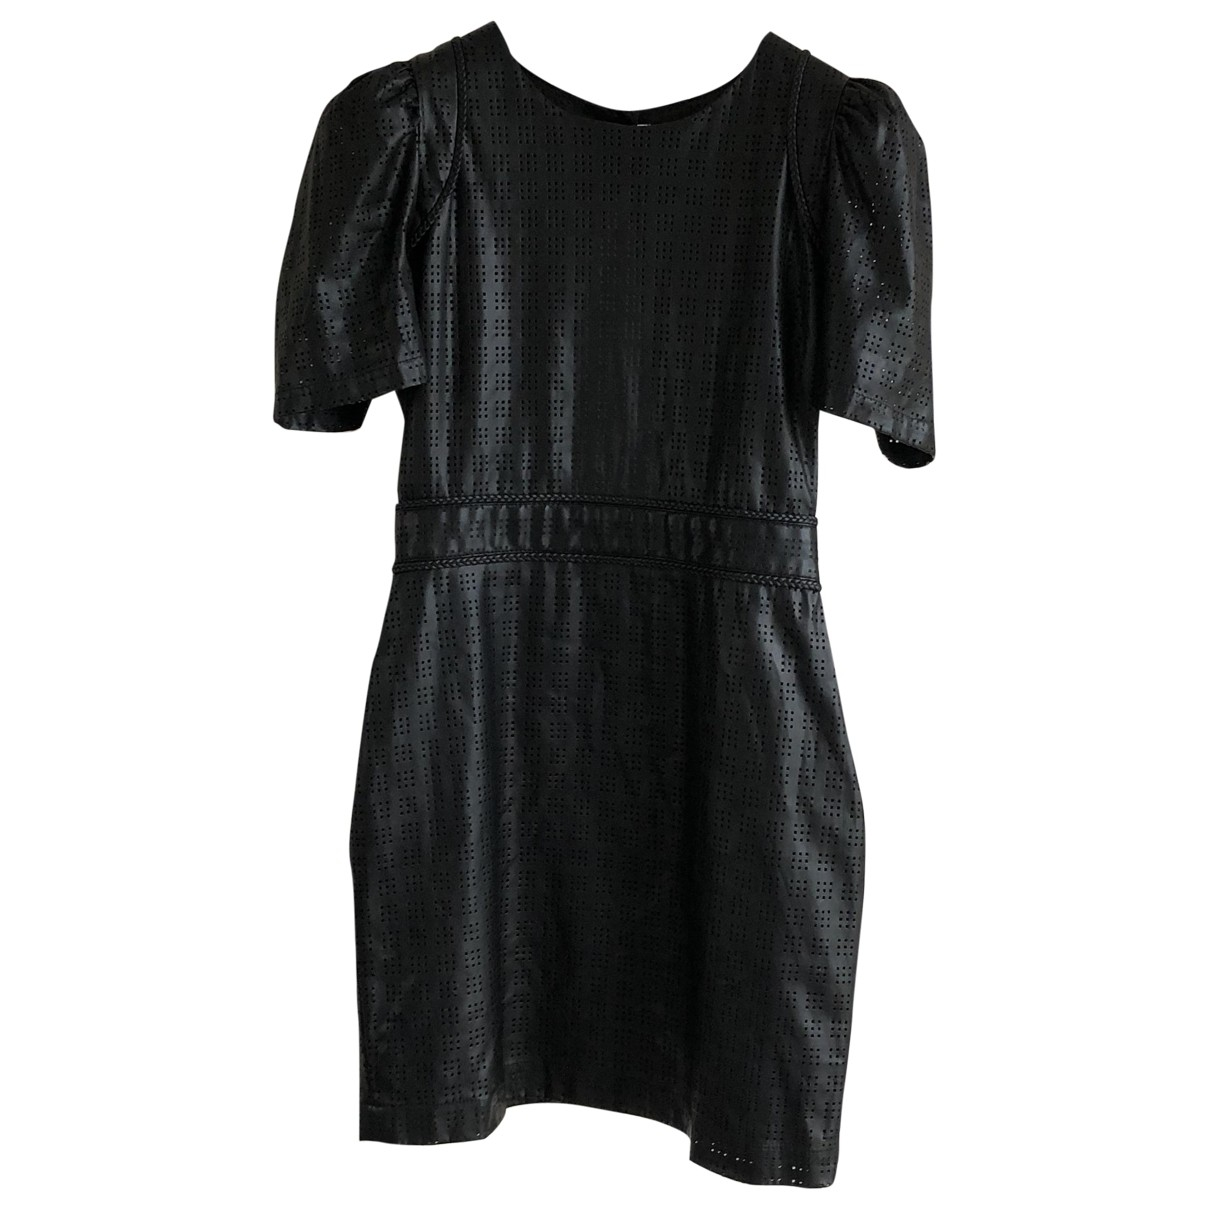 Rodebjer \N Kleid in  Schwarz Synthetik